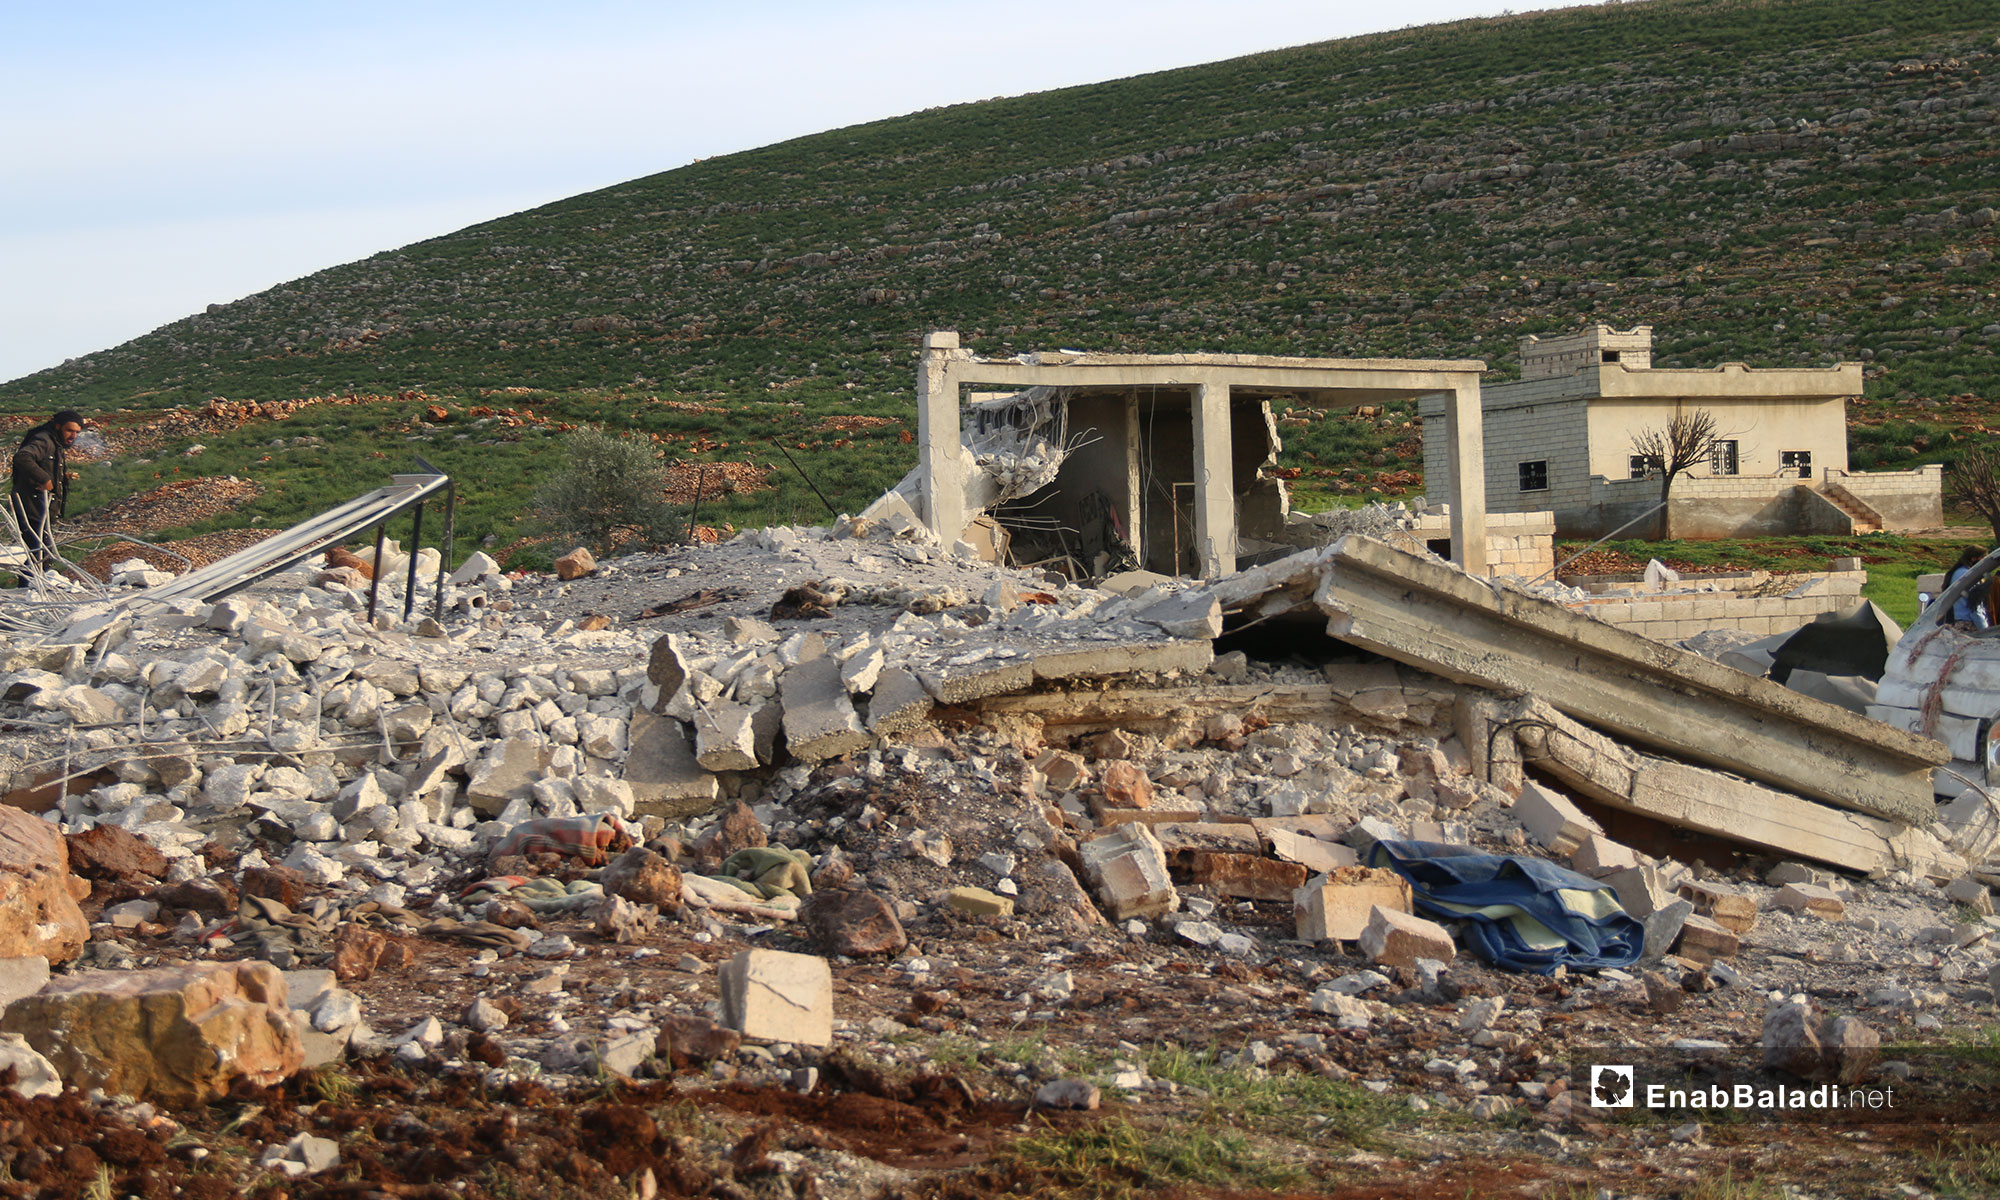 The destruction caused by the shelling in the town of Faqie, southern Idlib - March 21, 2019 (Enab Baladi)